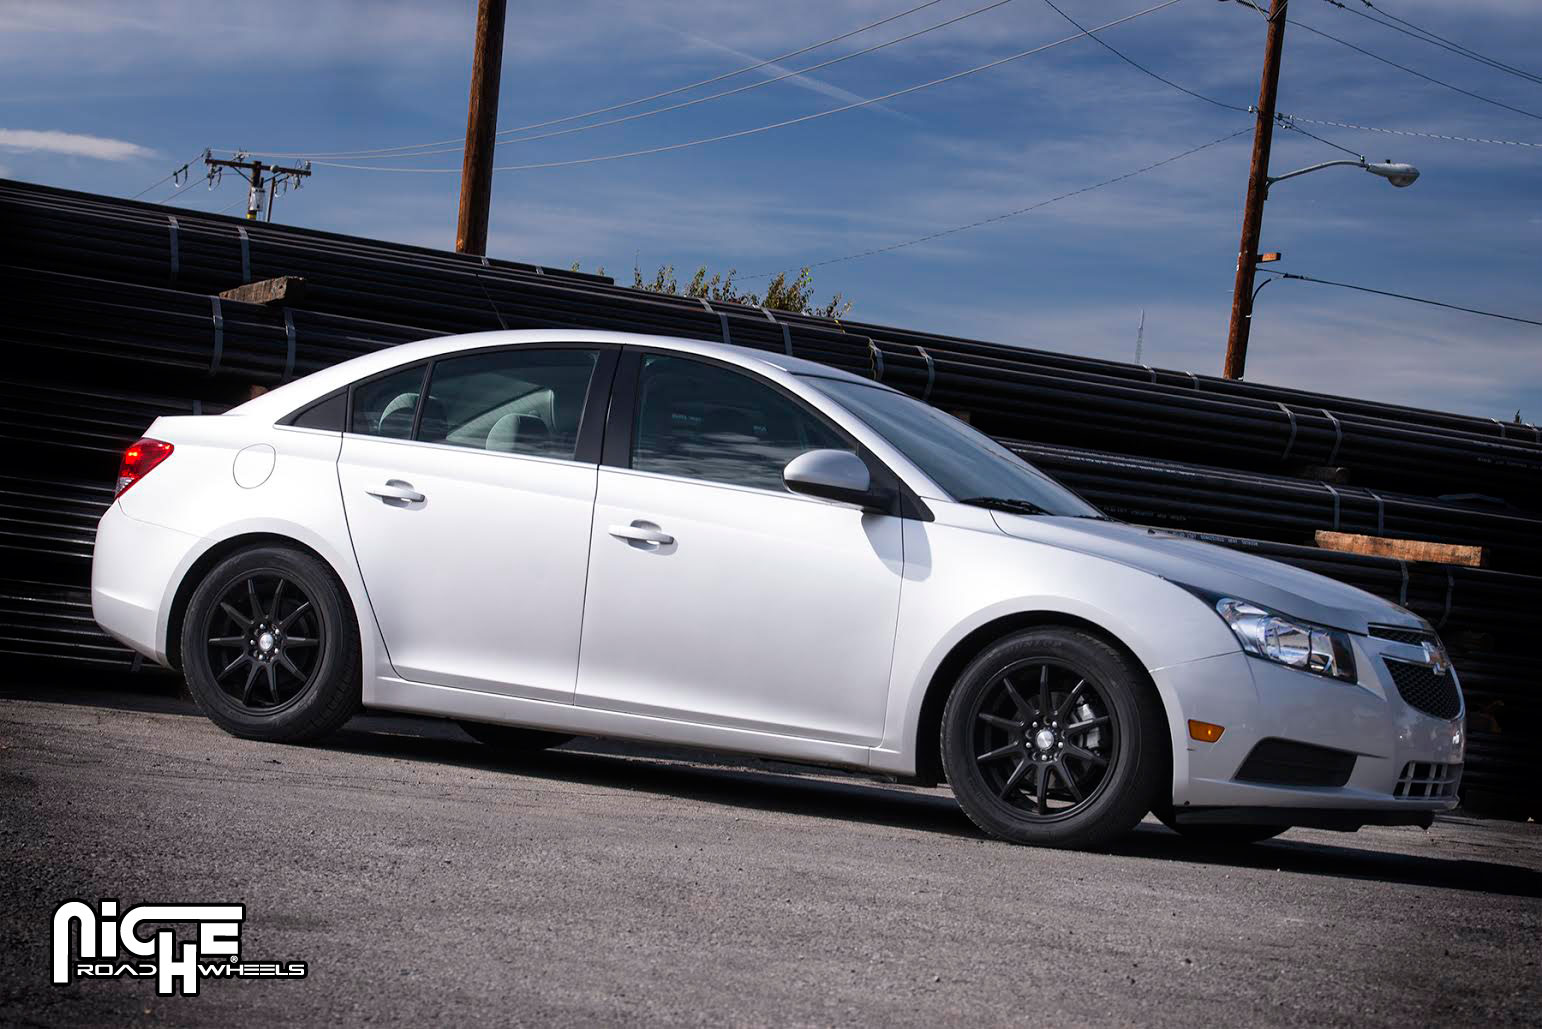 2012 Chevy Cruze Tire Size >> Car Chevrolet Cruze On Niche Racing Series Nr10 M122 Wheels